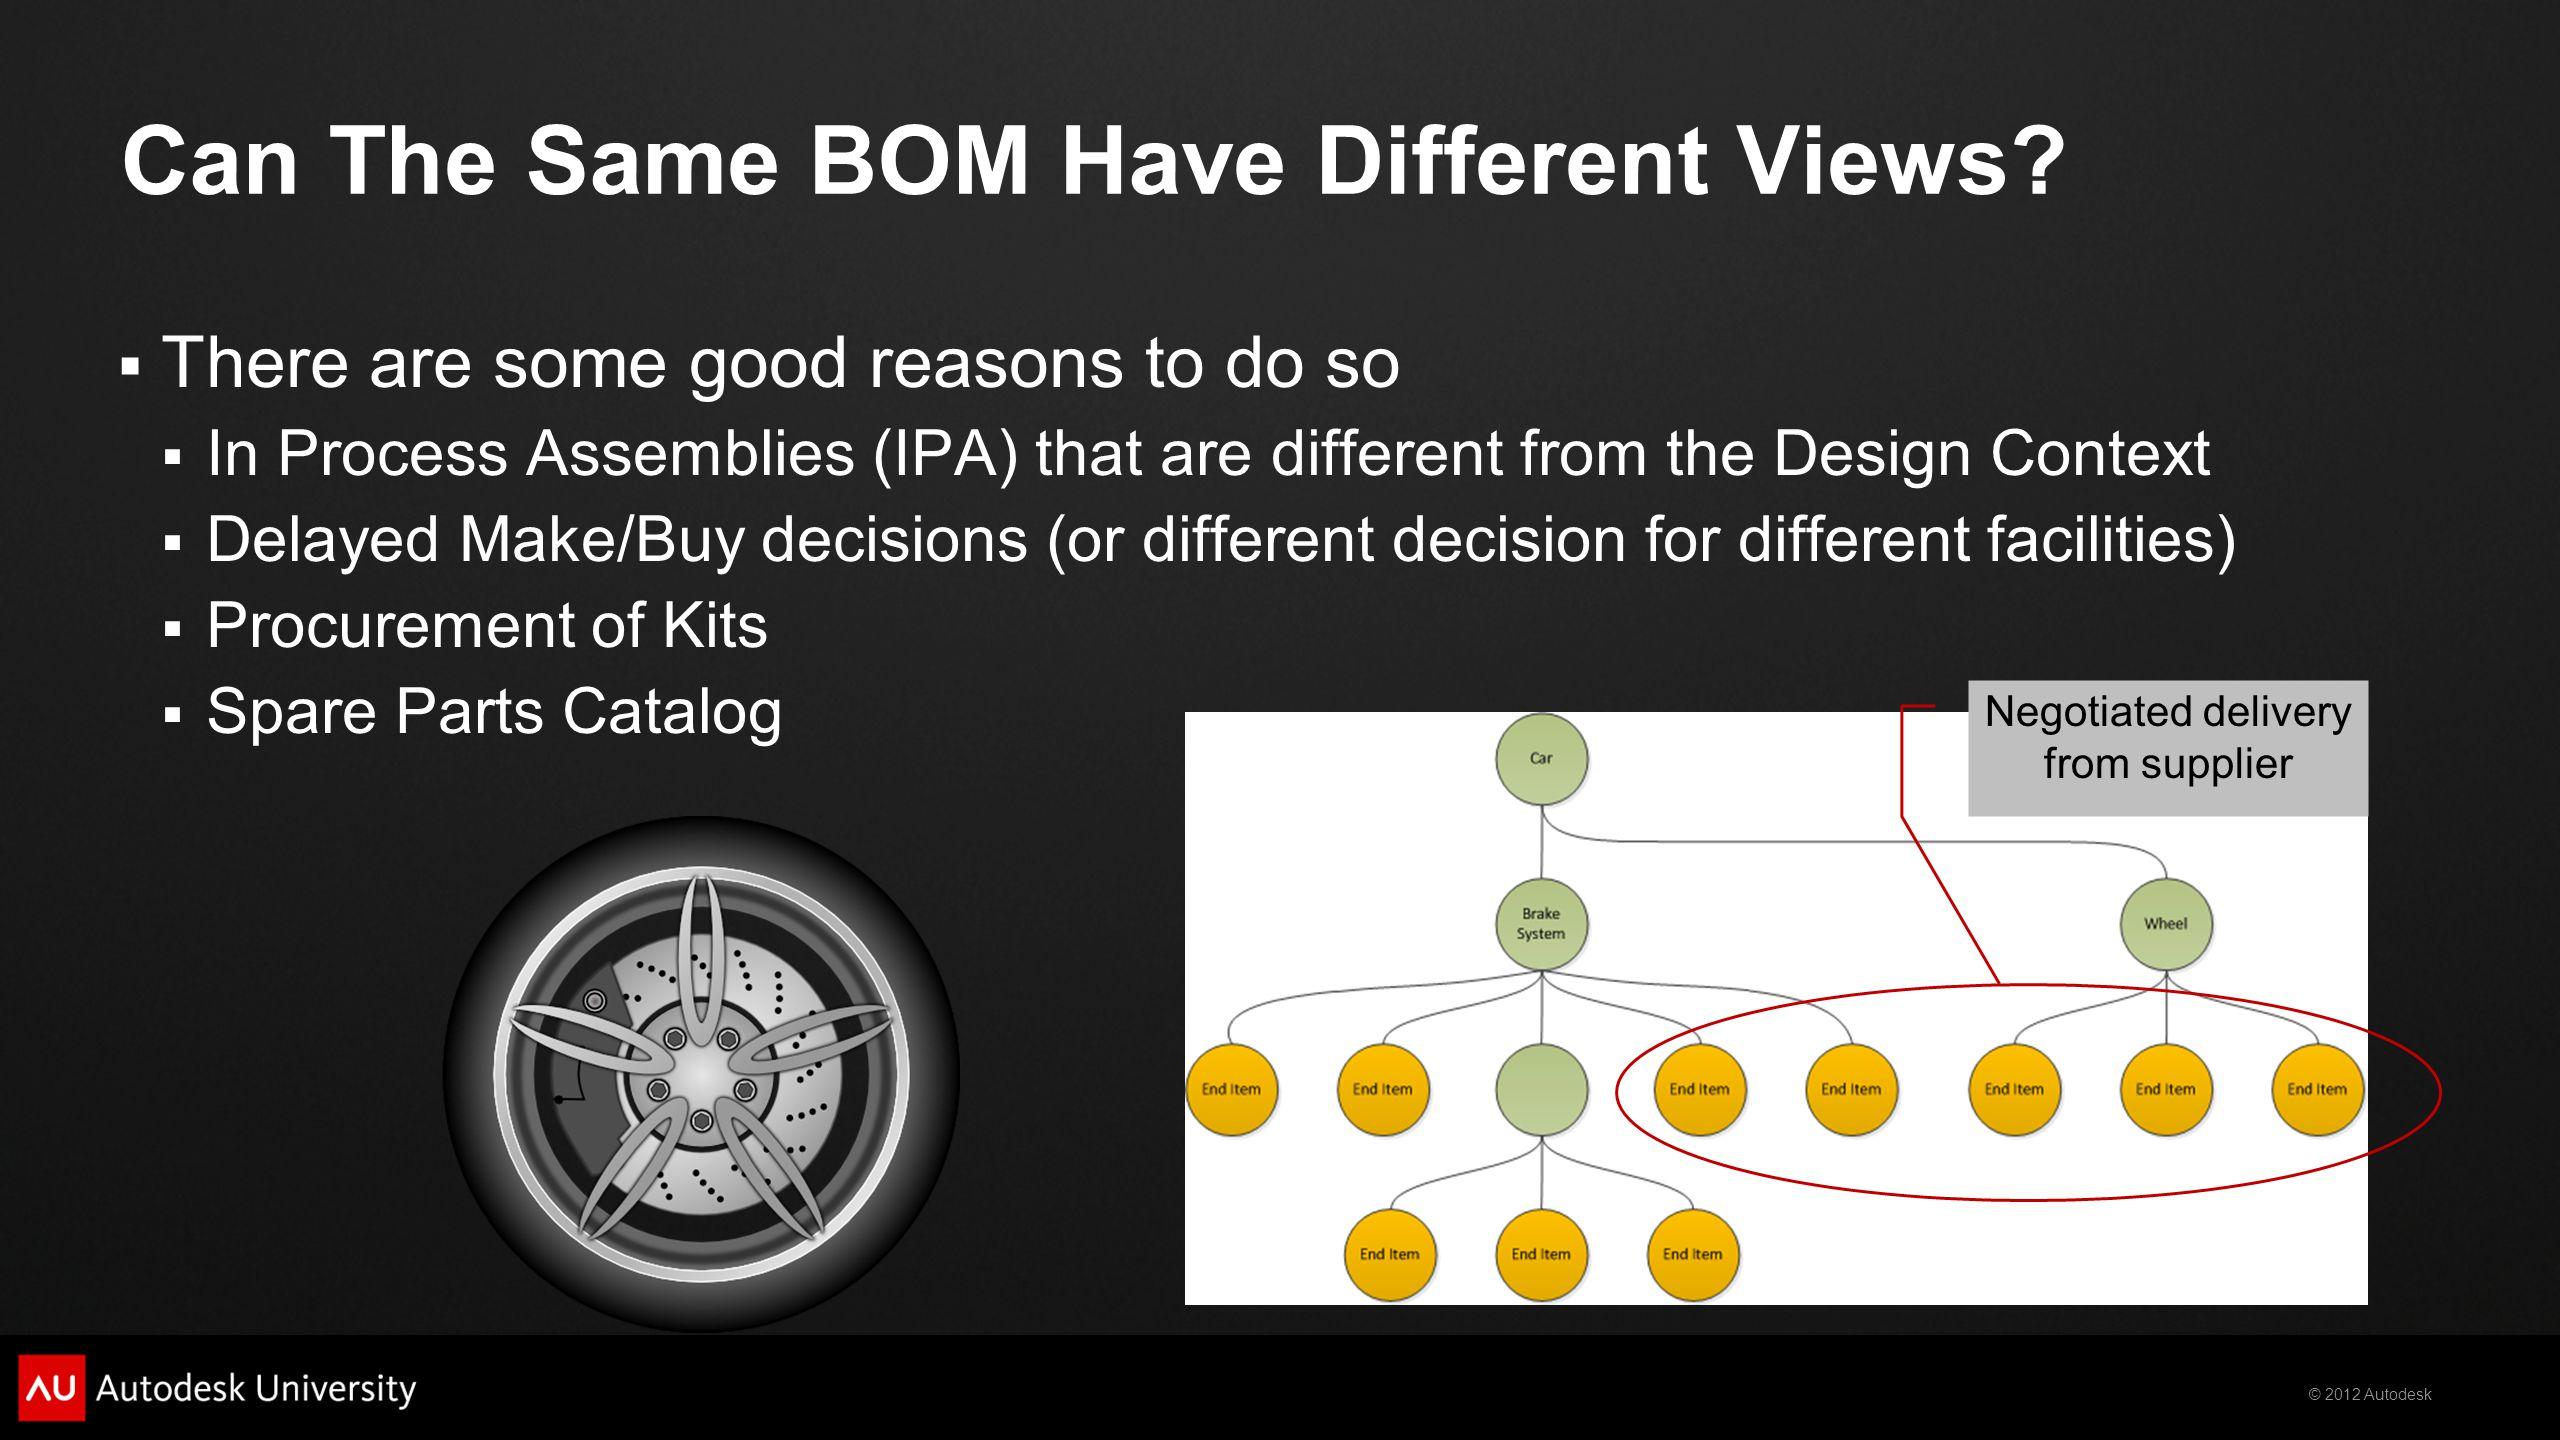 © 2012 Autodesk Can The Same BOM Have Different Views? There are some good reasons to do so In Process Assemblies (IPA) that are different from the De